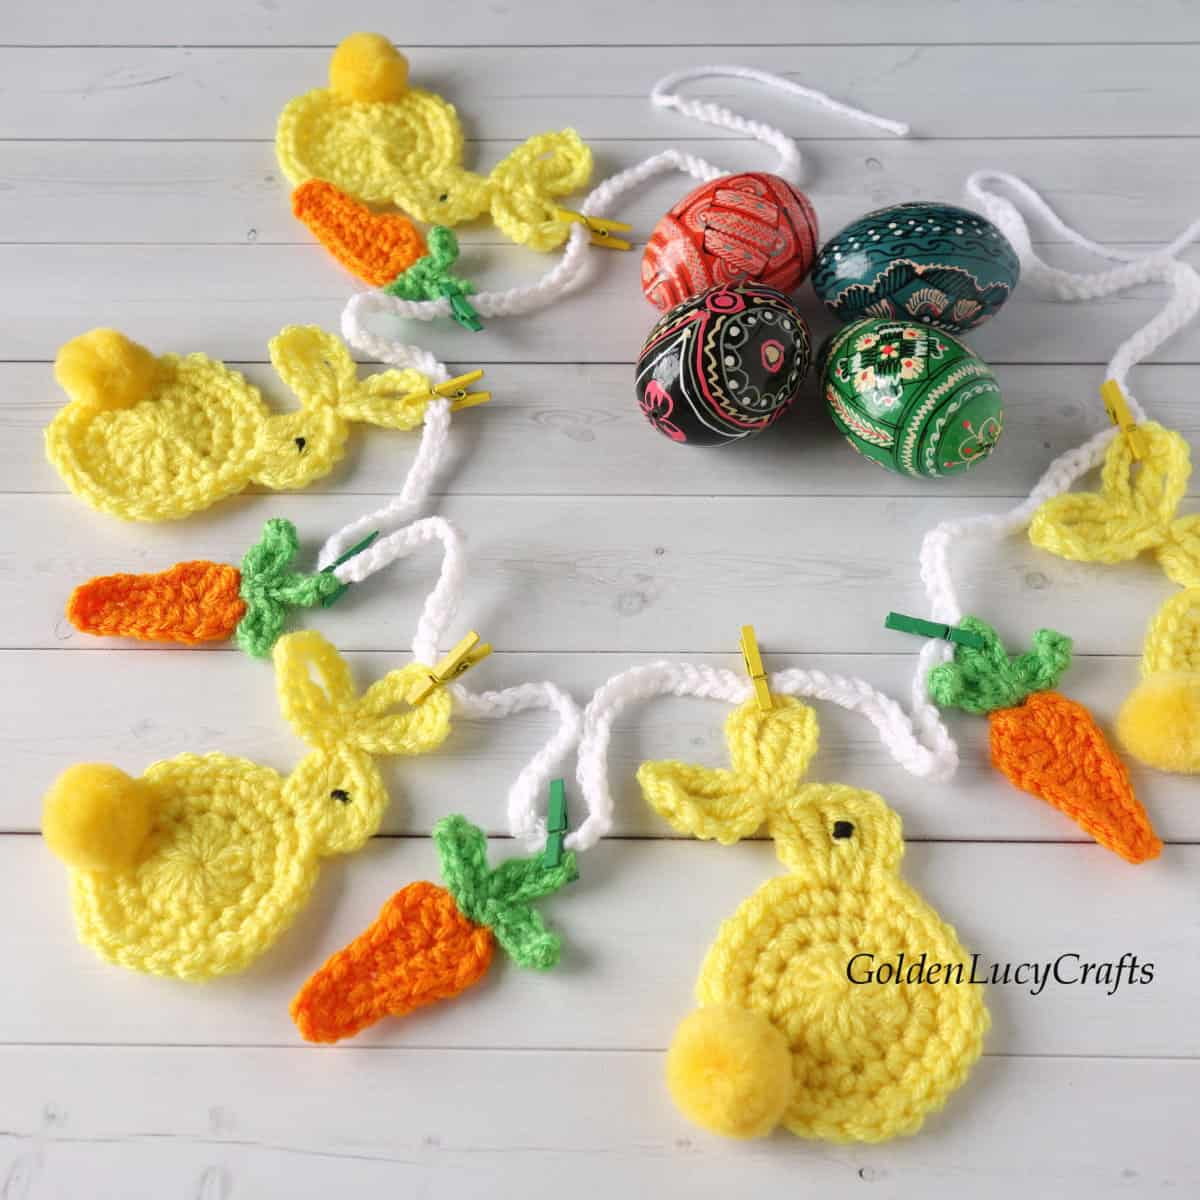 Crocheted Easter garland with bunnies and carrots laying on surface with painted Easter eggs next to it.